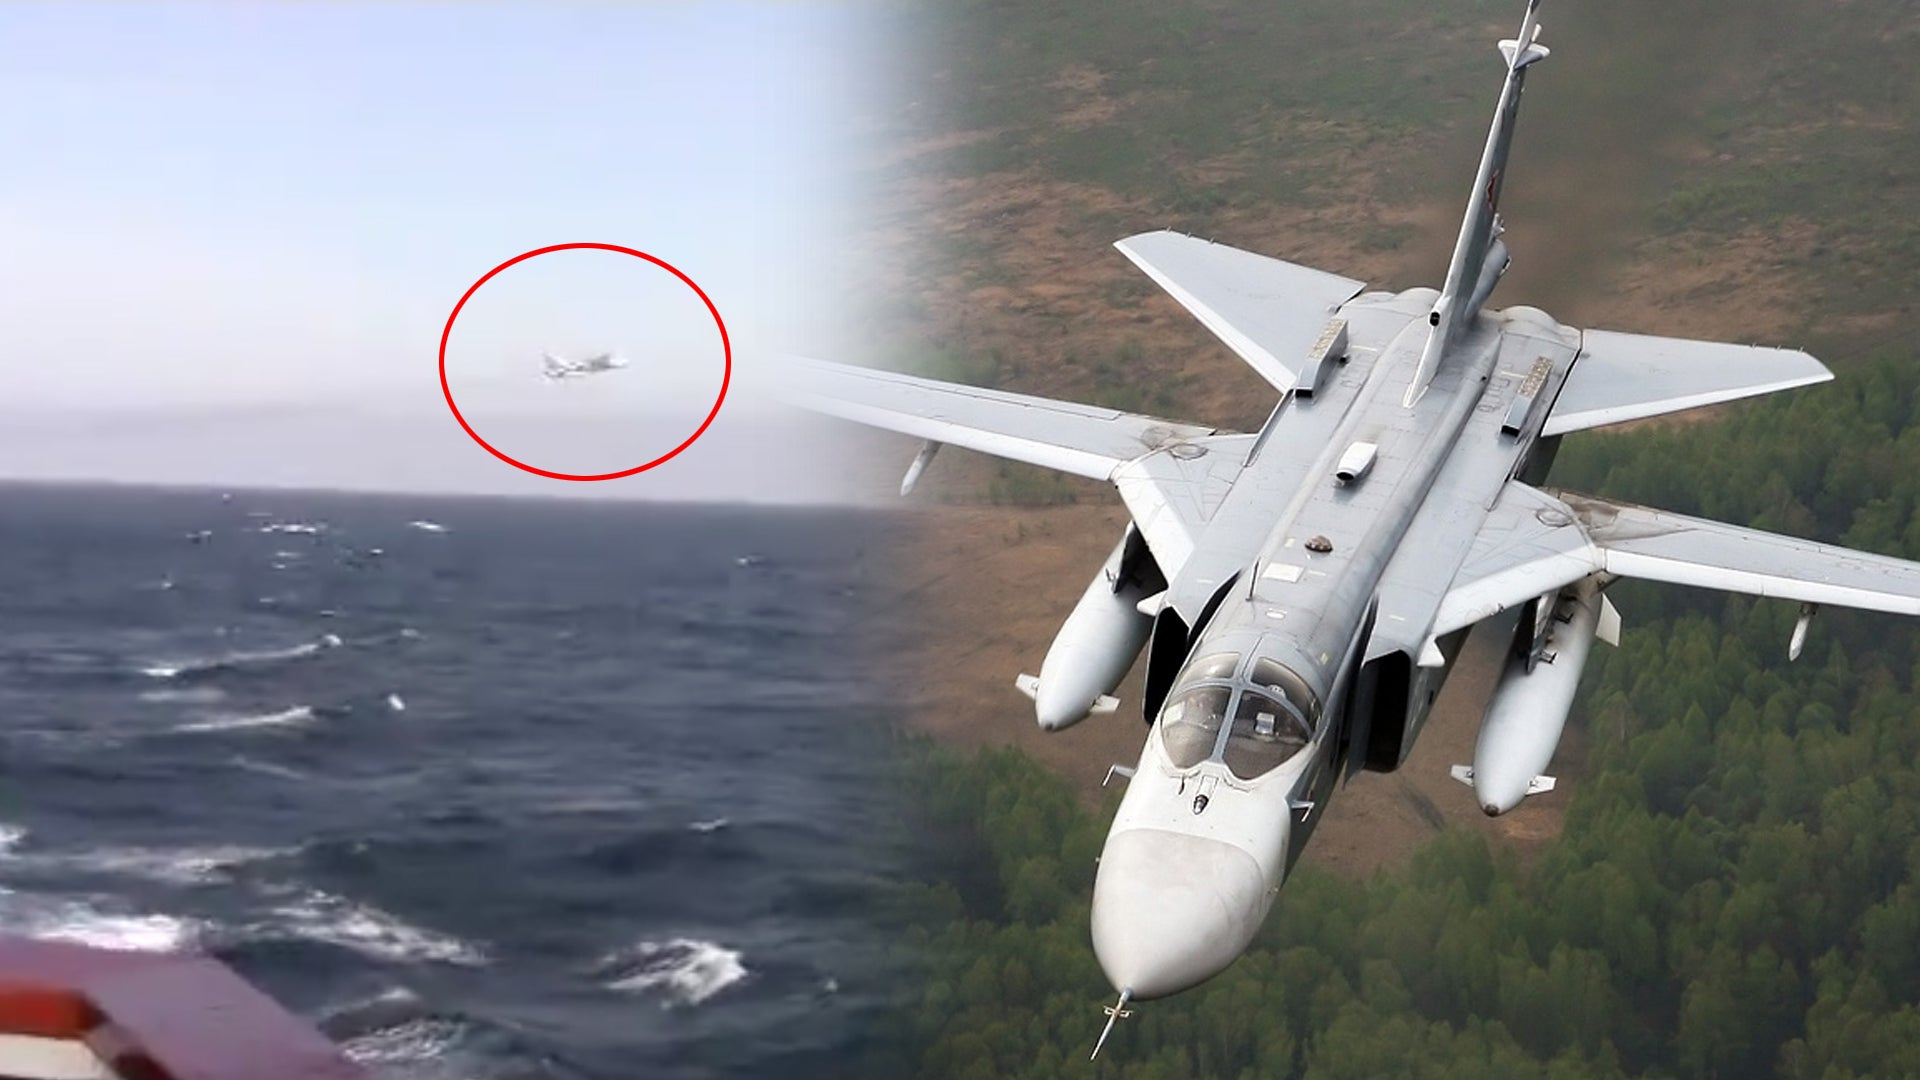 Russian fighter jet buzzes USS Donald Cook in the Black Sea [Updated]